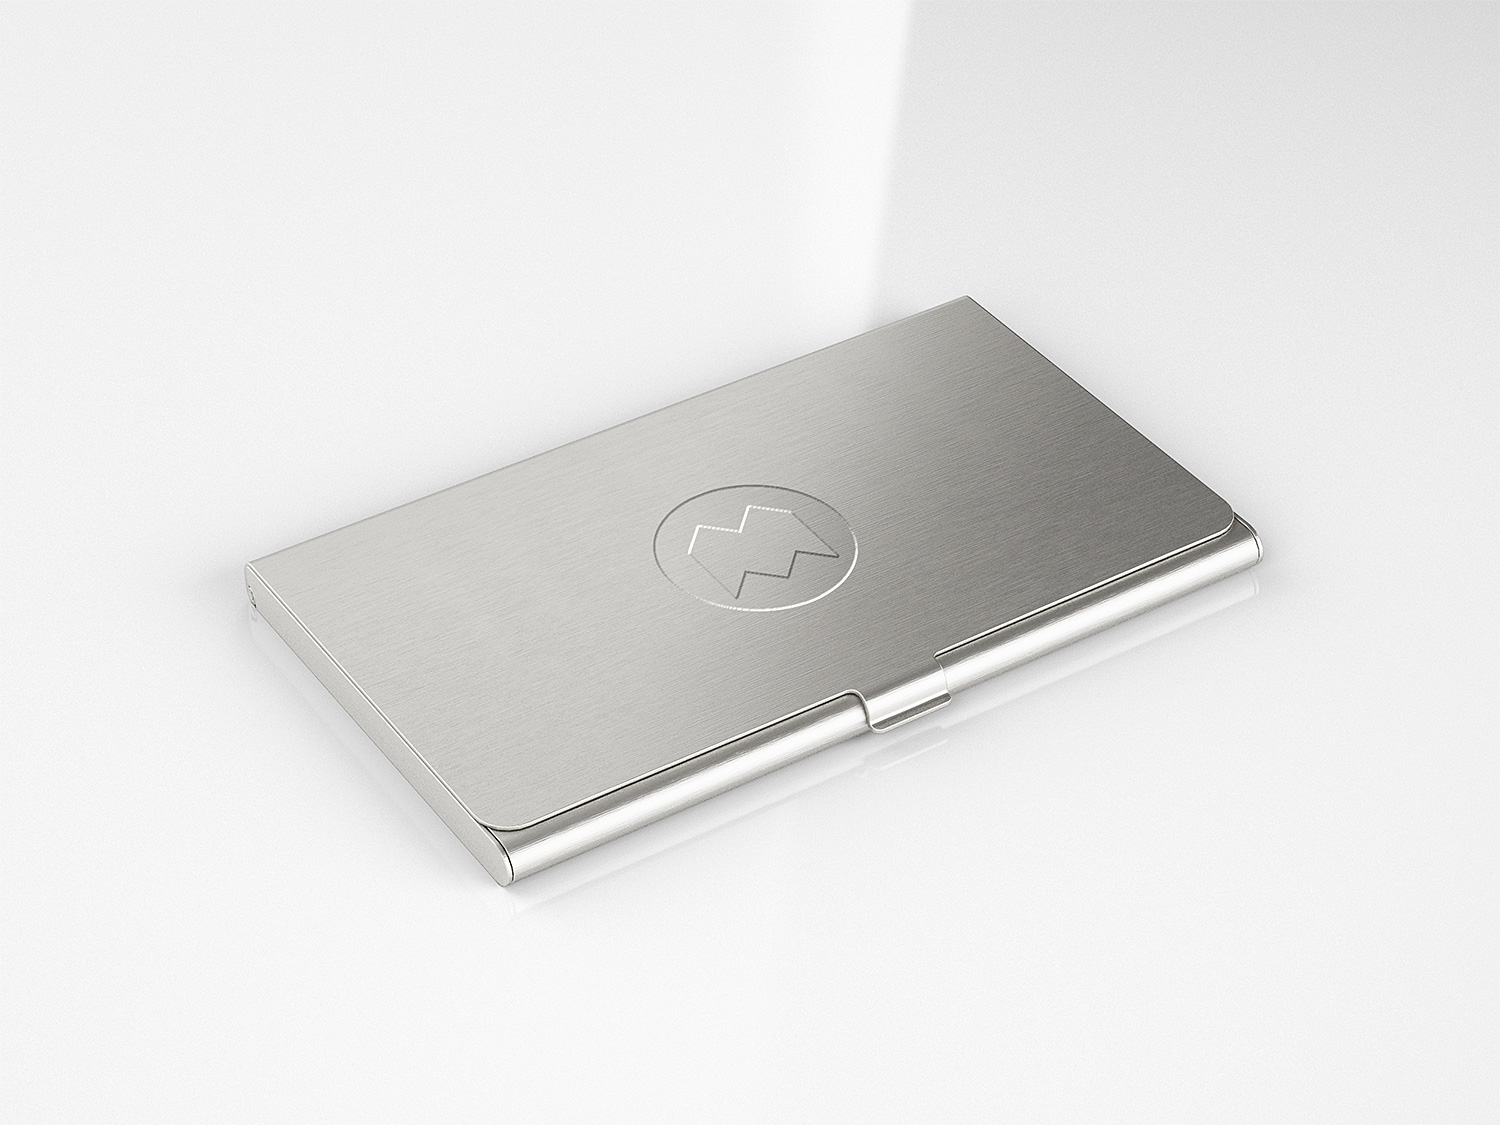 Business-Card-Holder-Mockup-02